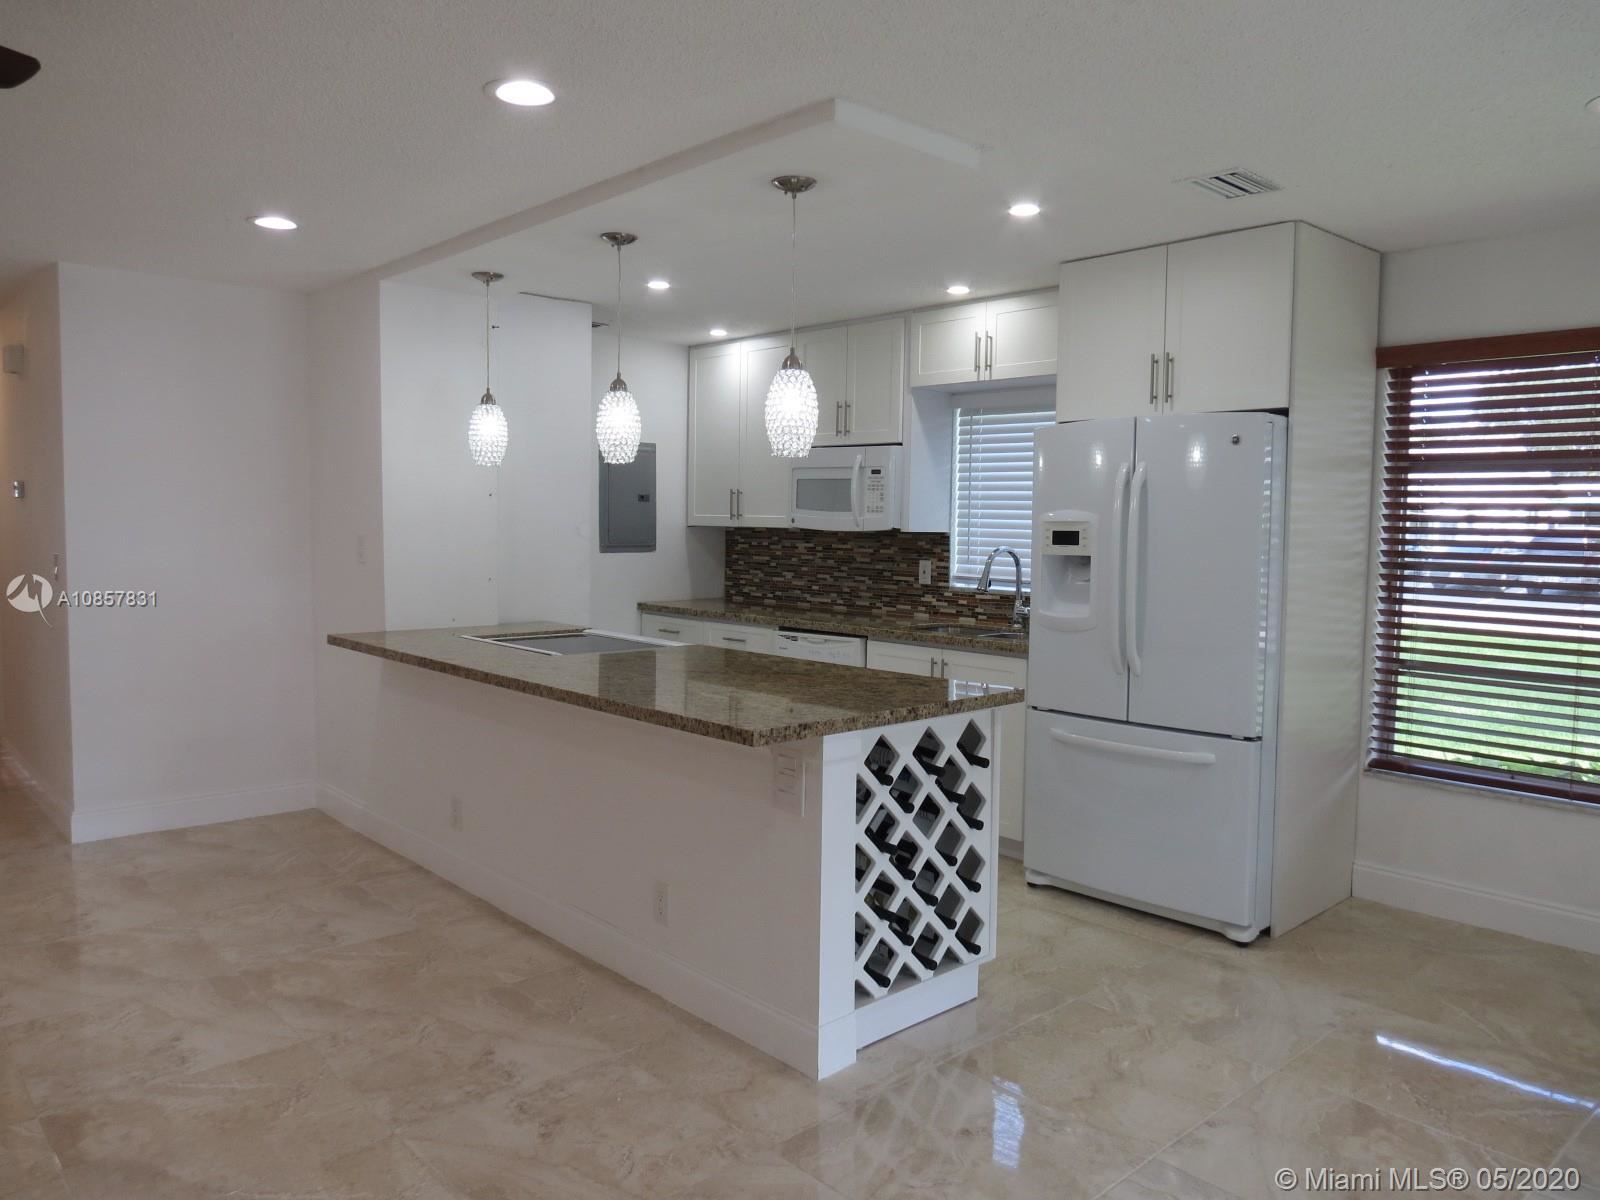 1147 NW 83rd Ave #D42, Plantation, FL 33322 - #: A10857831